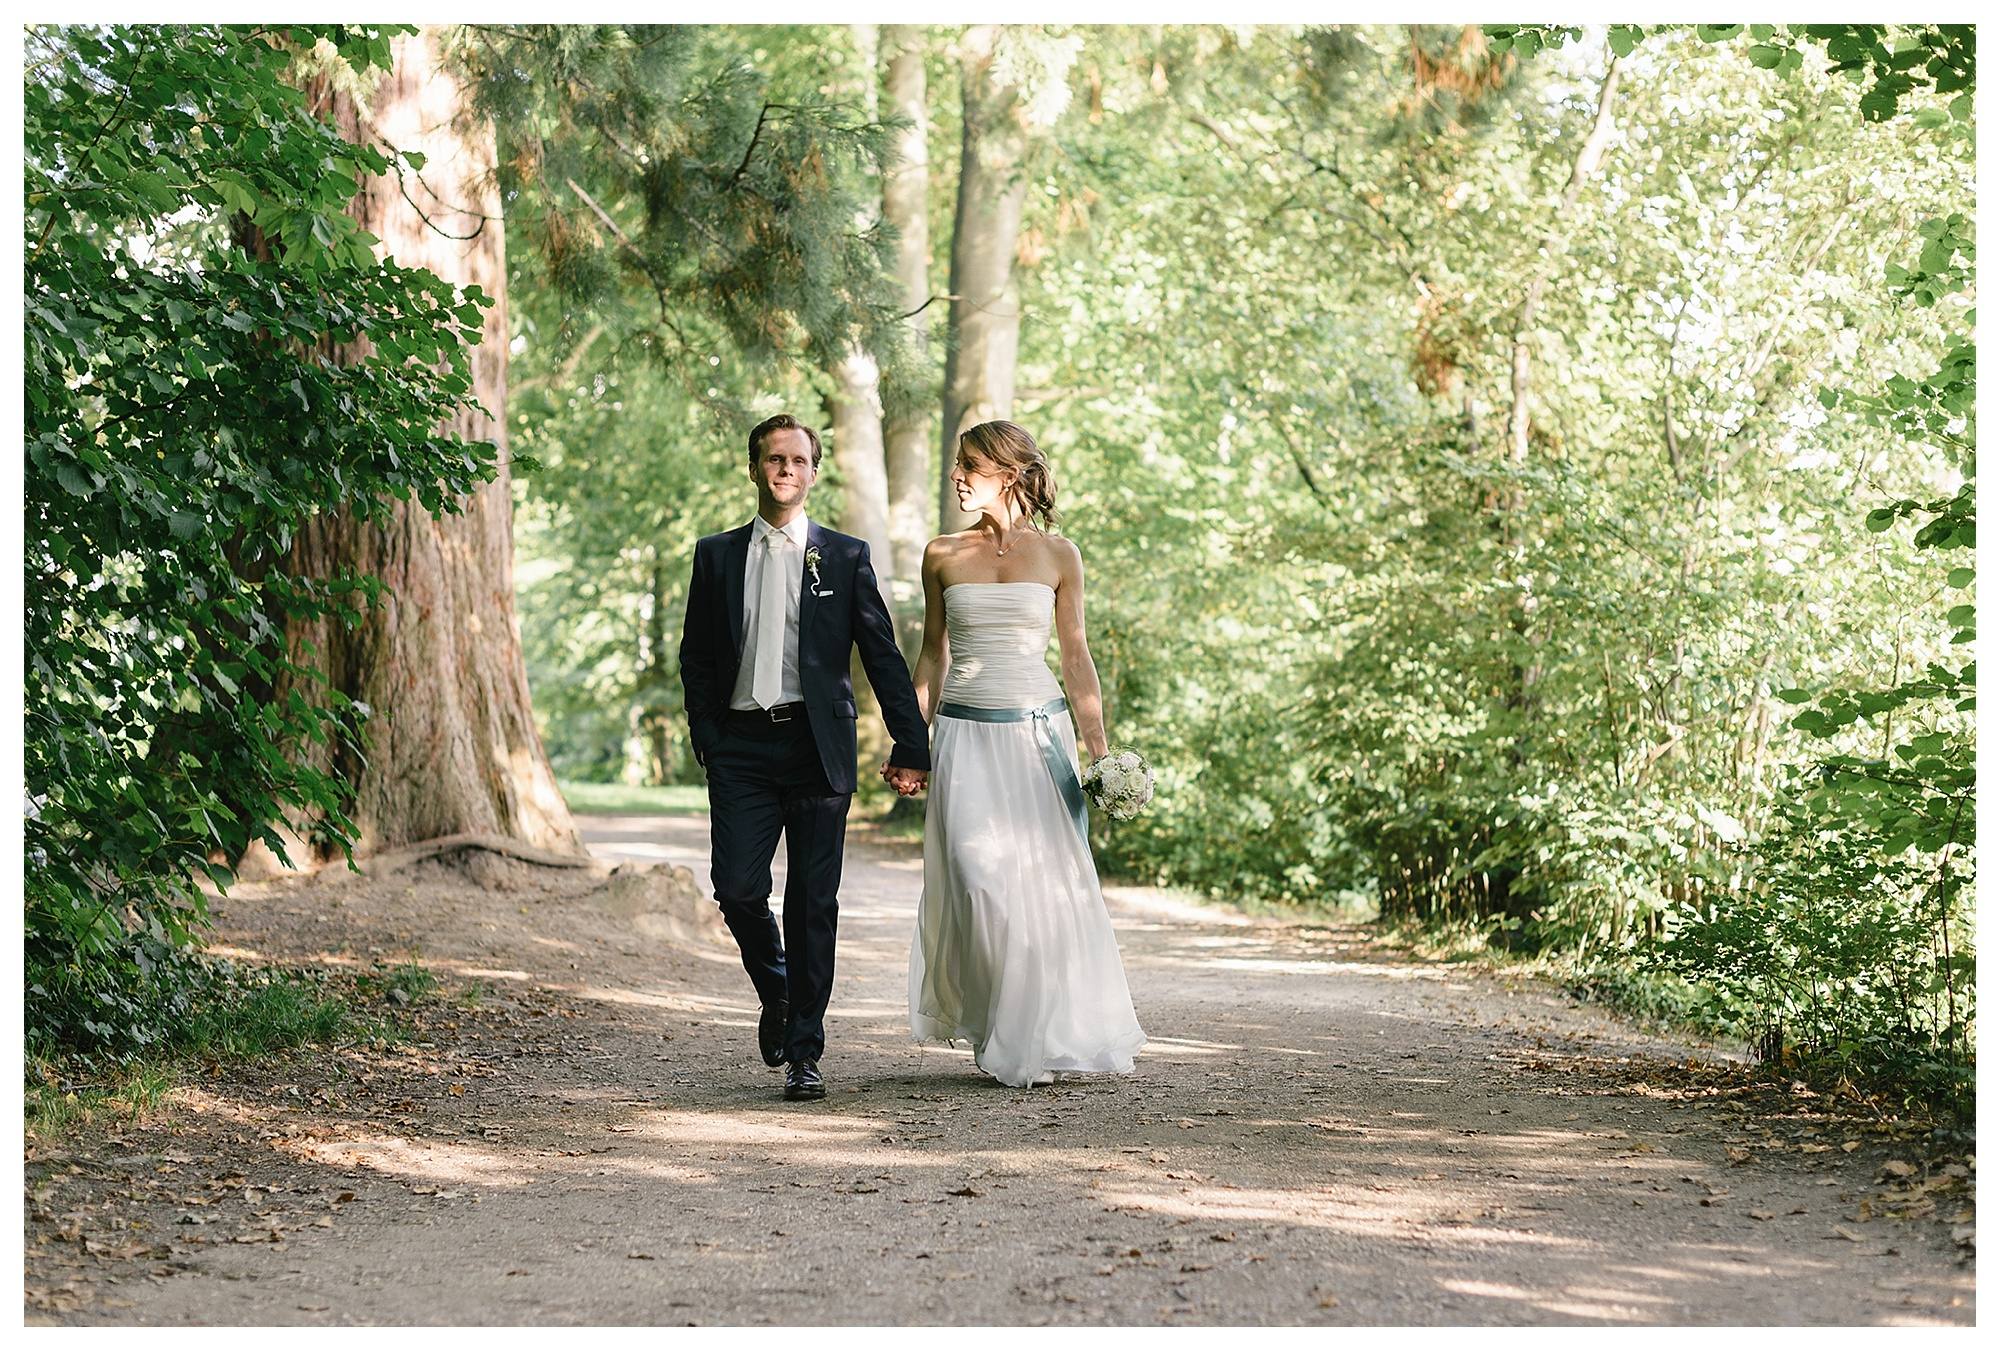 Fotograf Konstanz - Hochzeitsreportage Konstanz Raphael Nicole Elmar Feuerbacher Photography Hochzeit Portrait 44 - Wedding in Constance at Lake of Constance  - 39 -